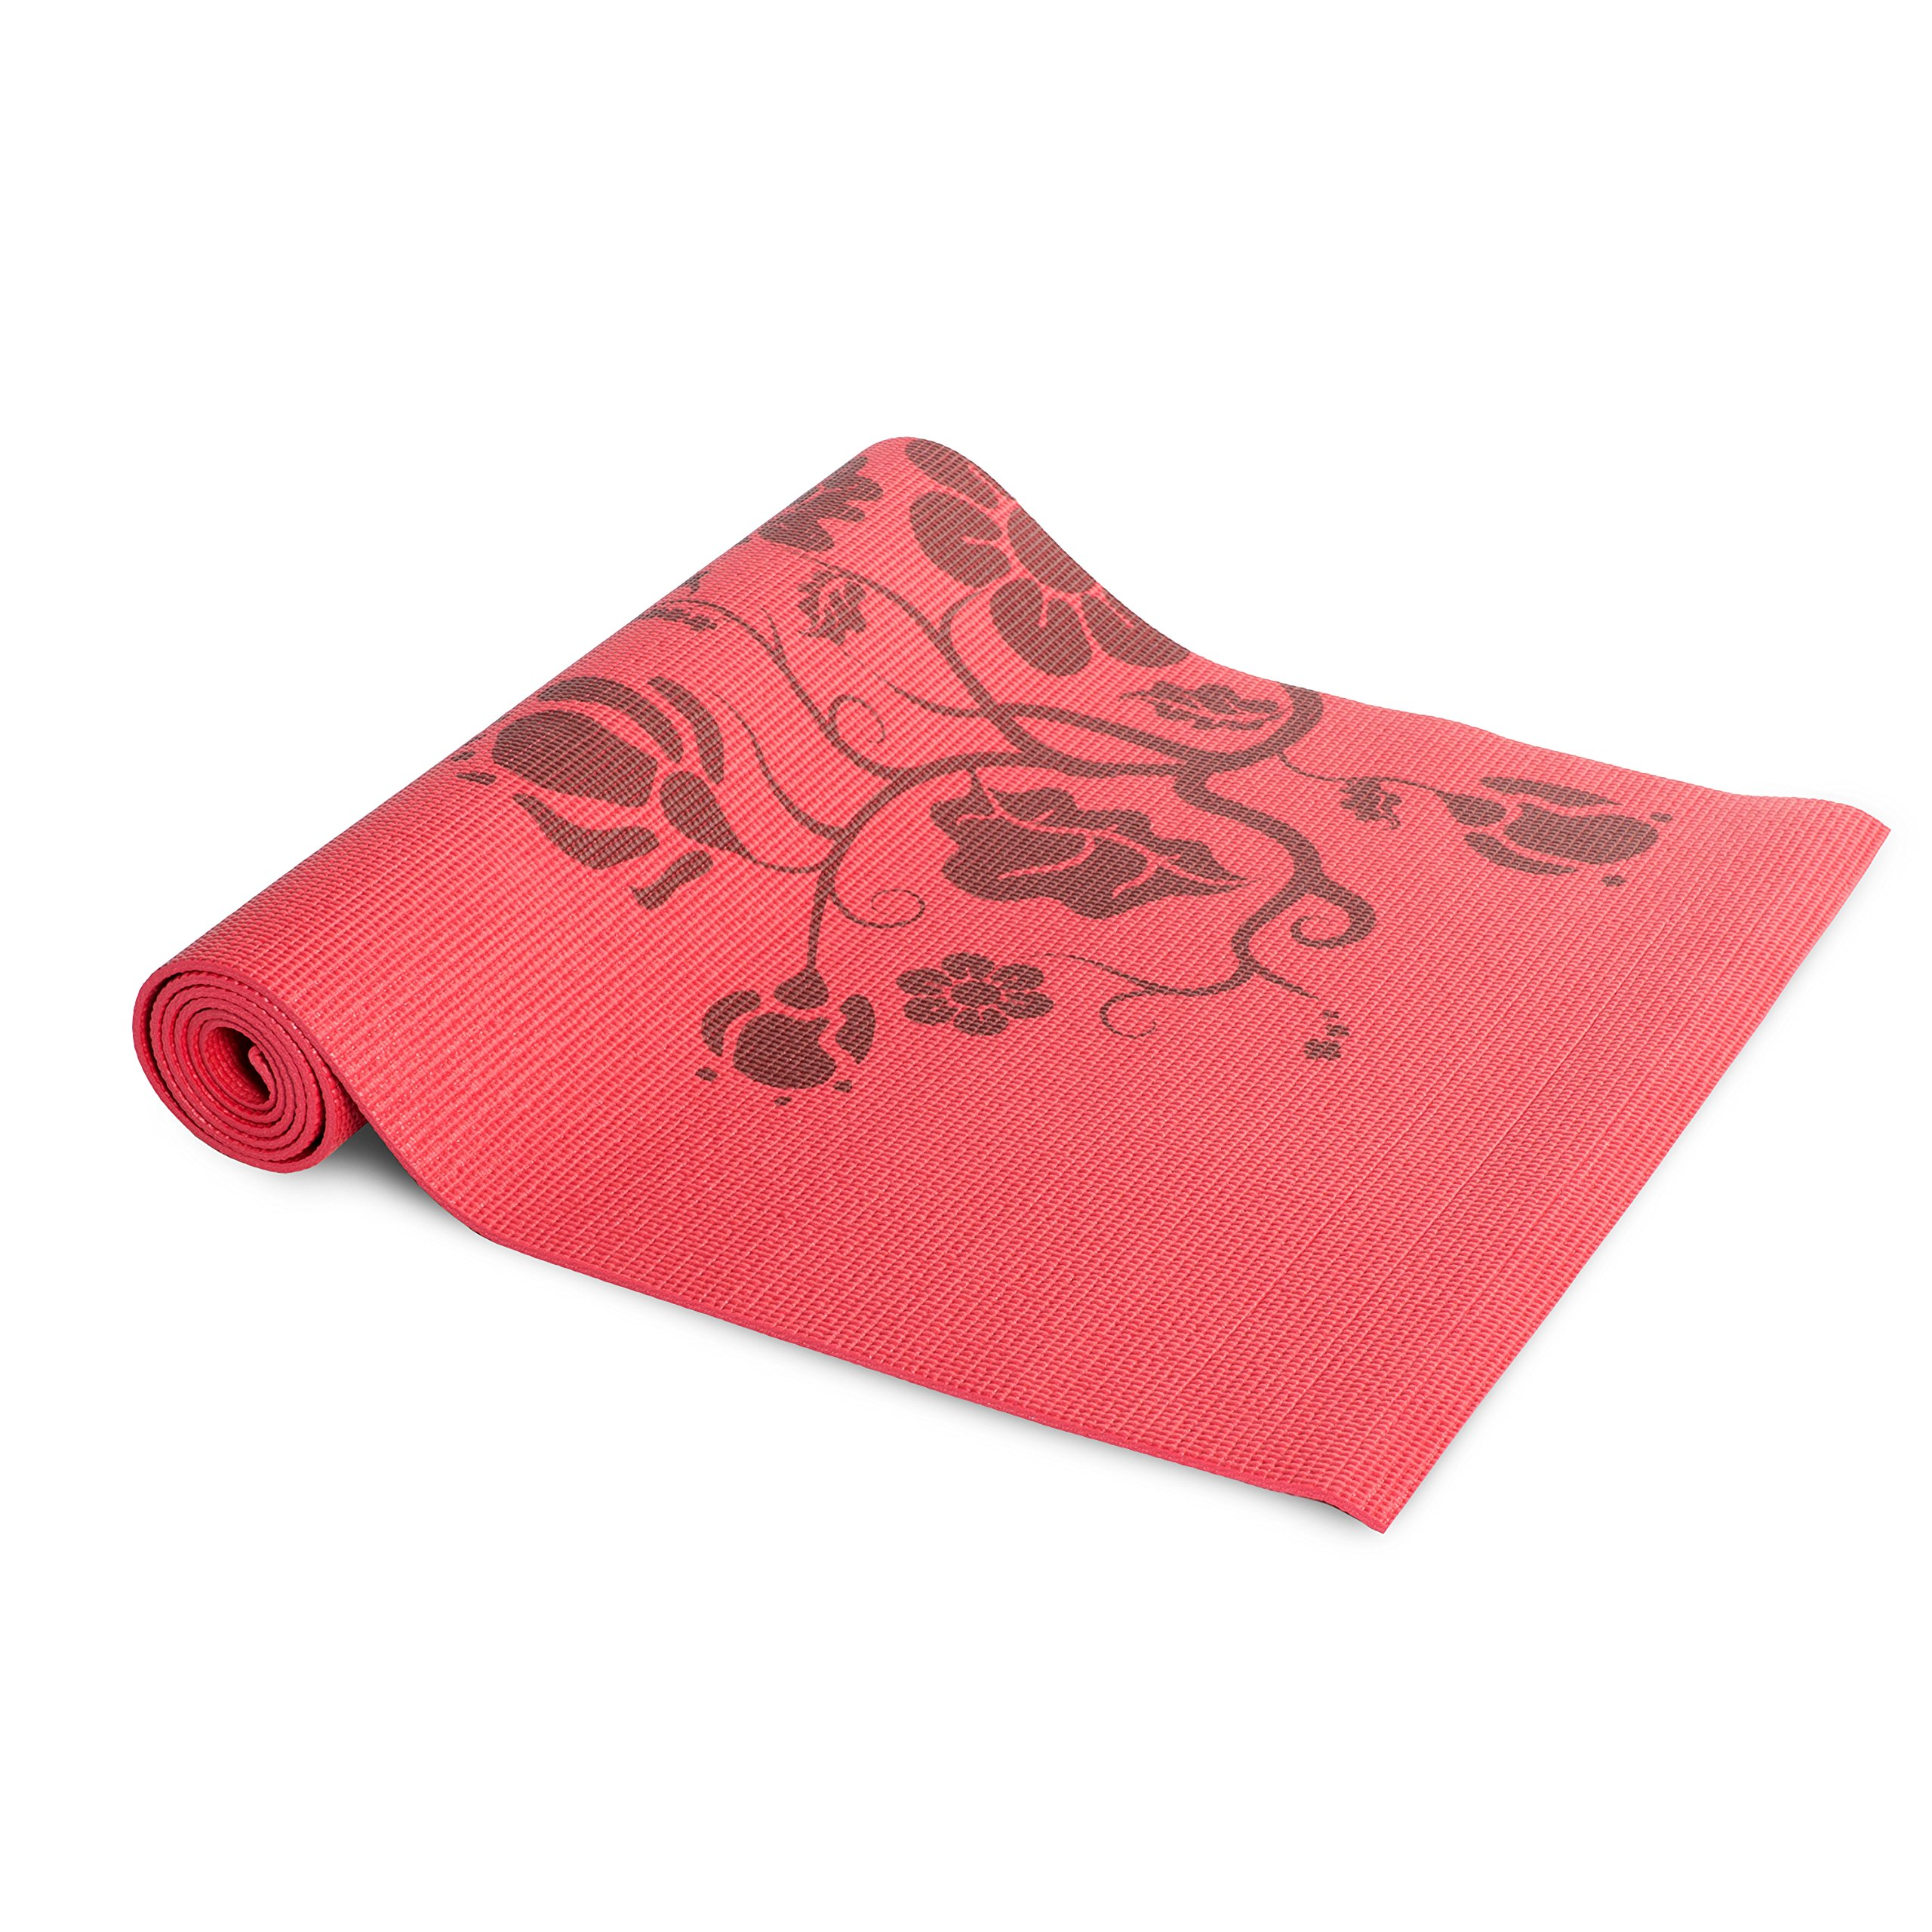 Tone Fitness Yoga Mat With Floral Pattern Exercisen